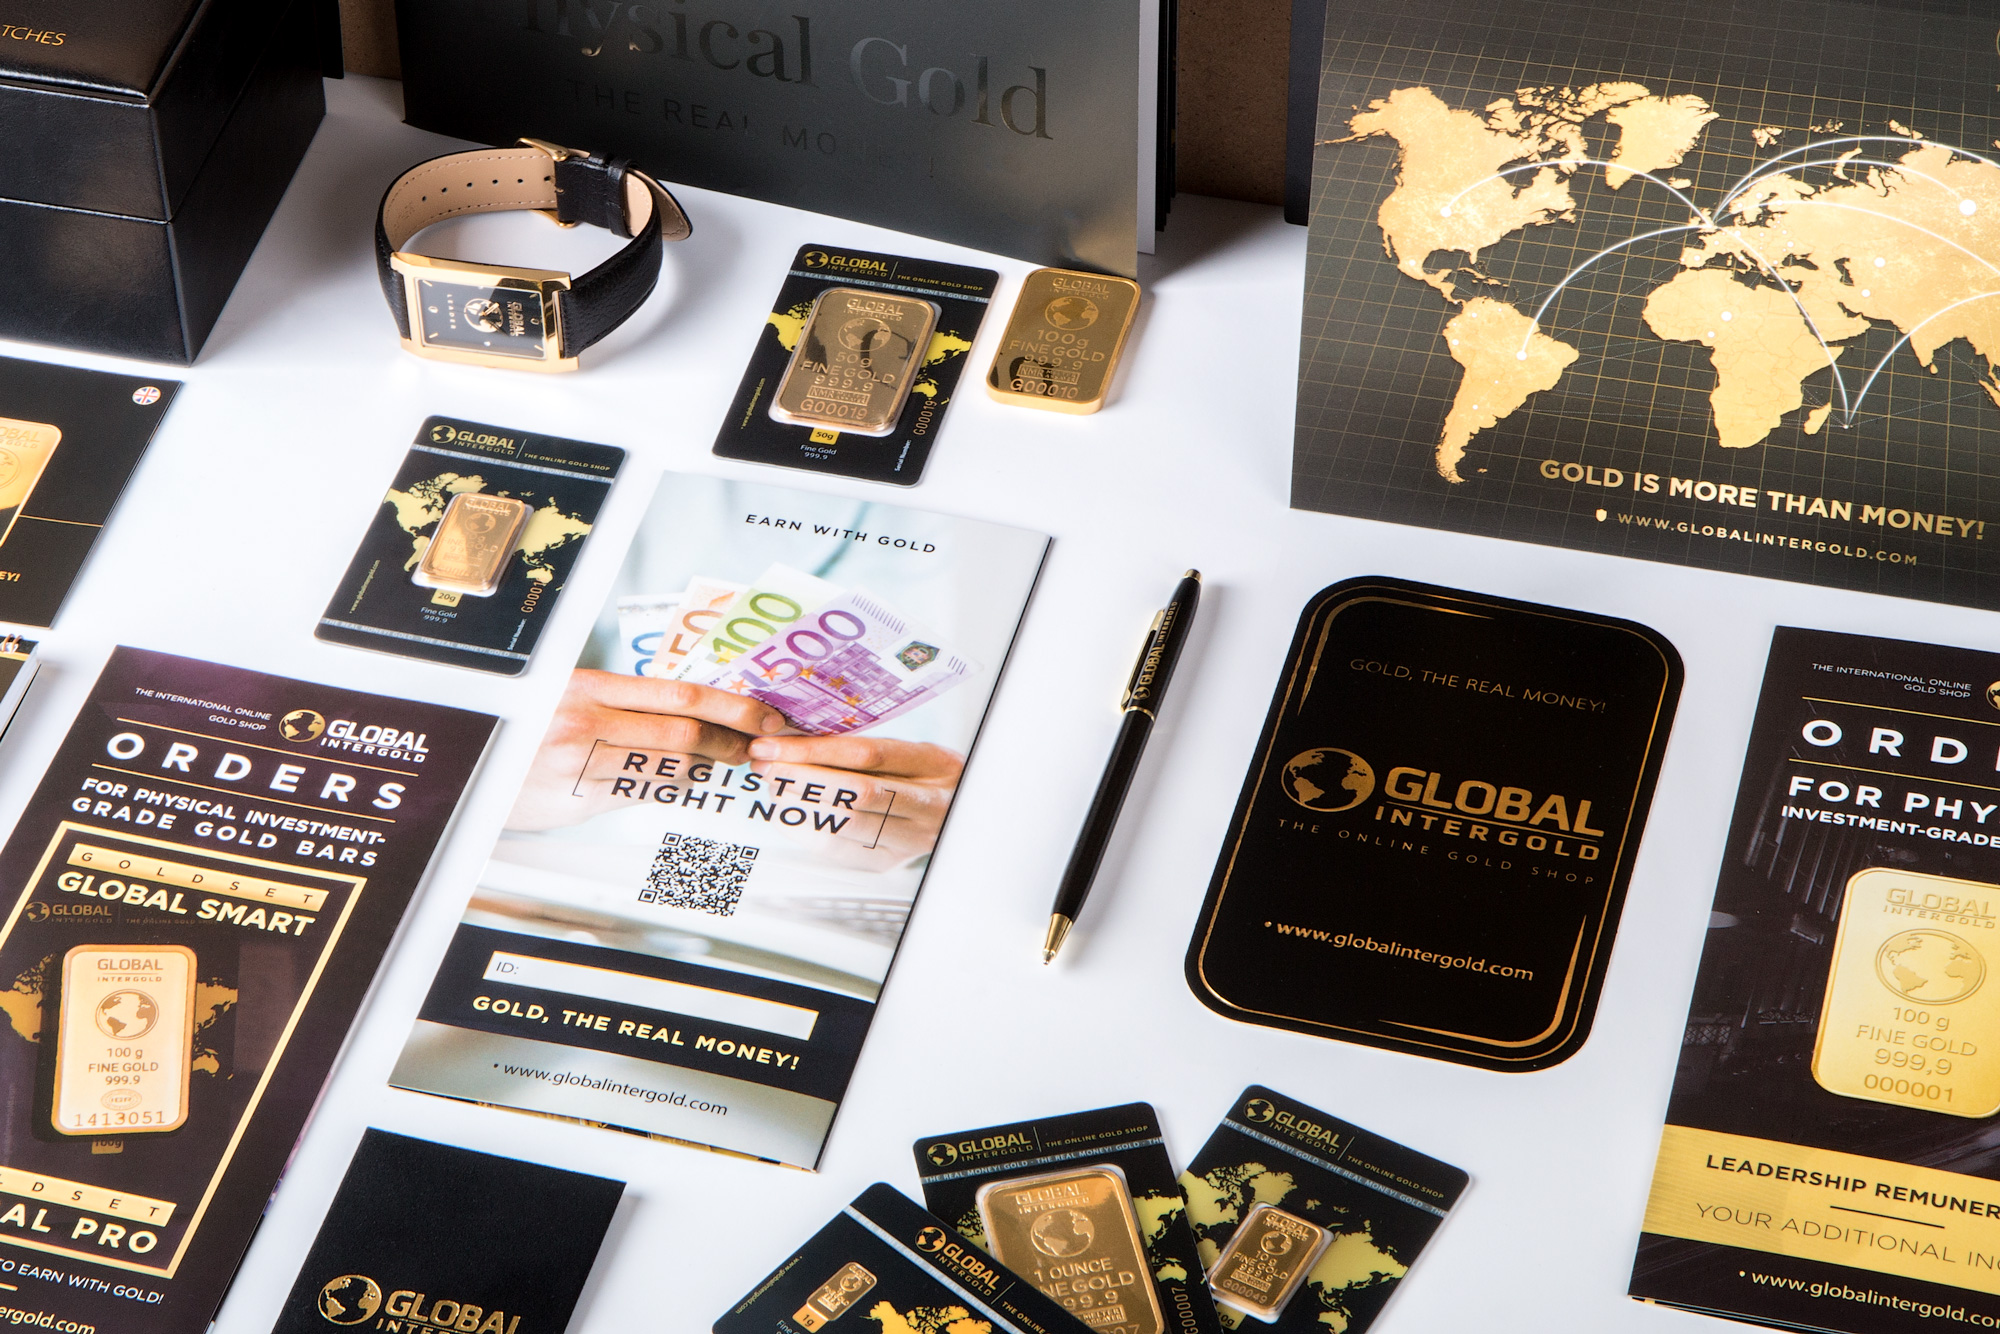 Free stock photos of business cards pexels free stock photo of luxury travel shopping business magicingreecefo Image collections